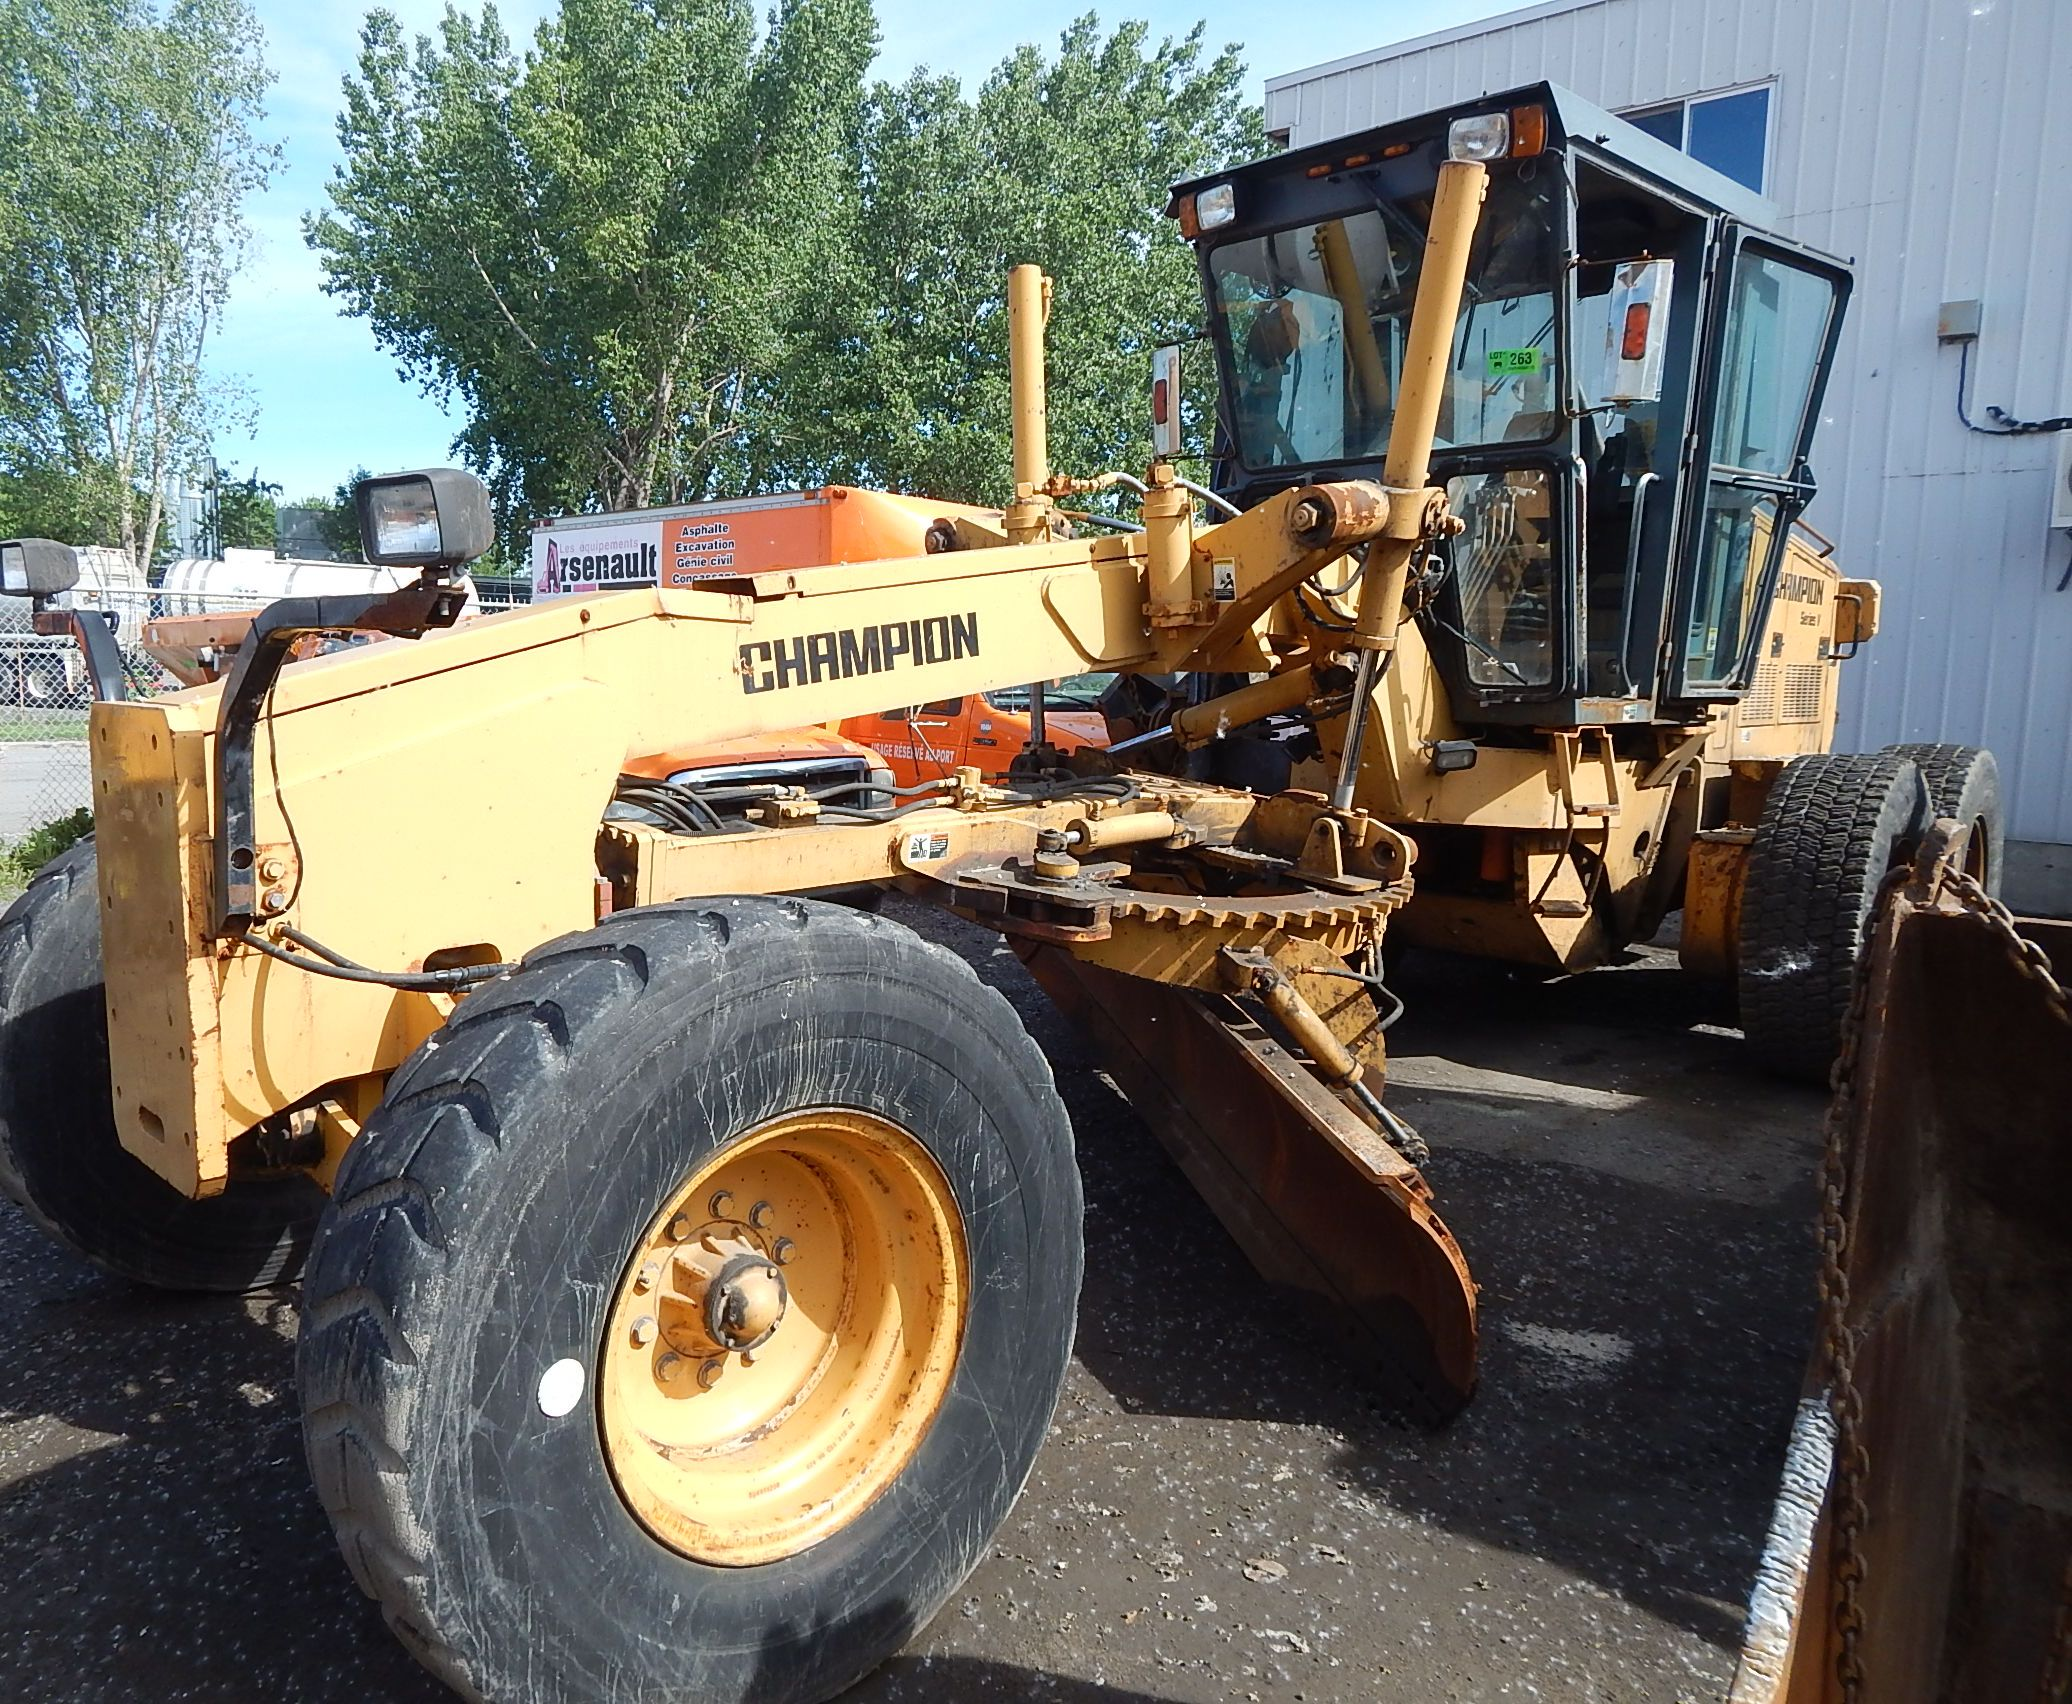 Lot 263 - CHAMPION 730A VHP SERIES V MOTOR GRADER, VIN X028348X